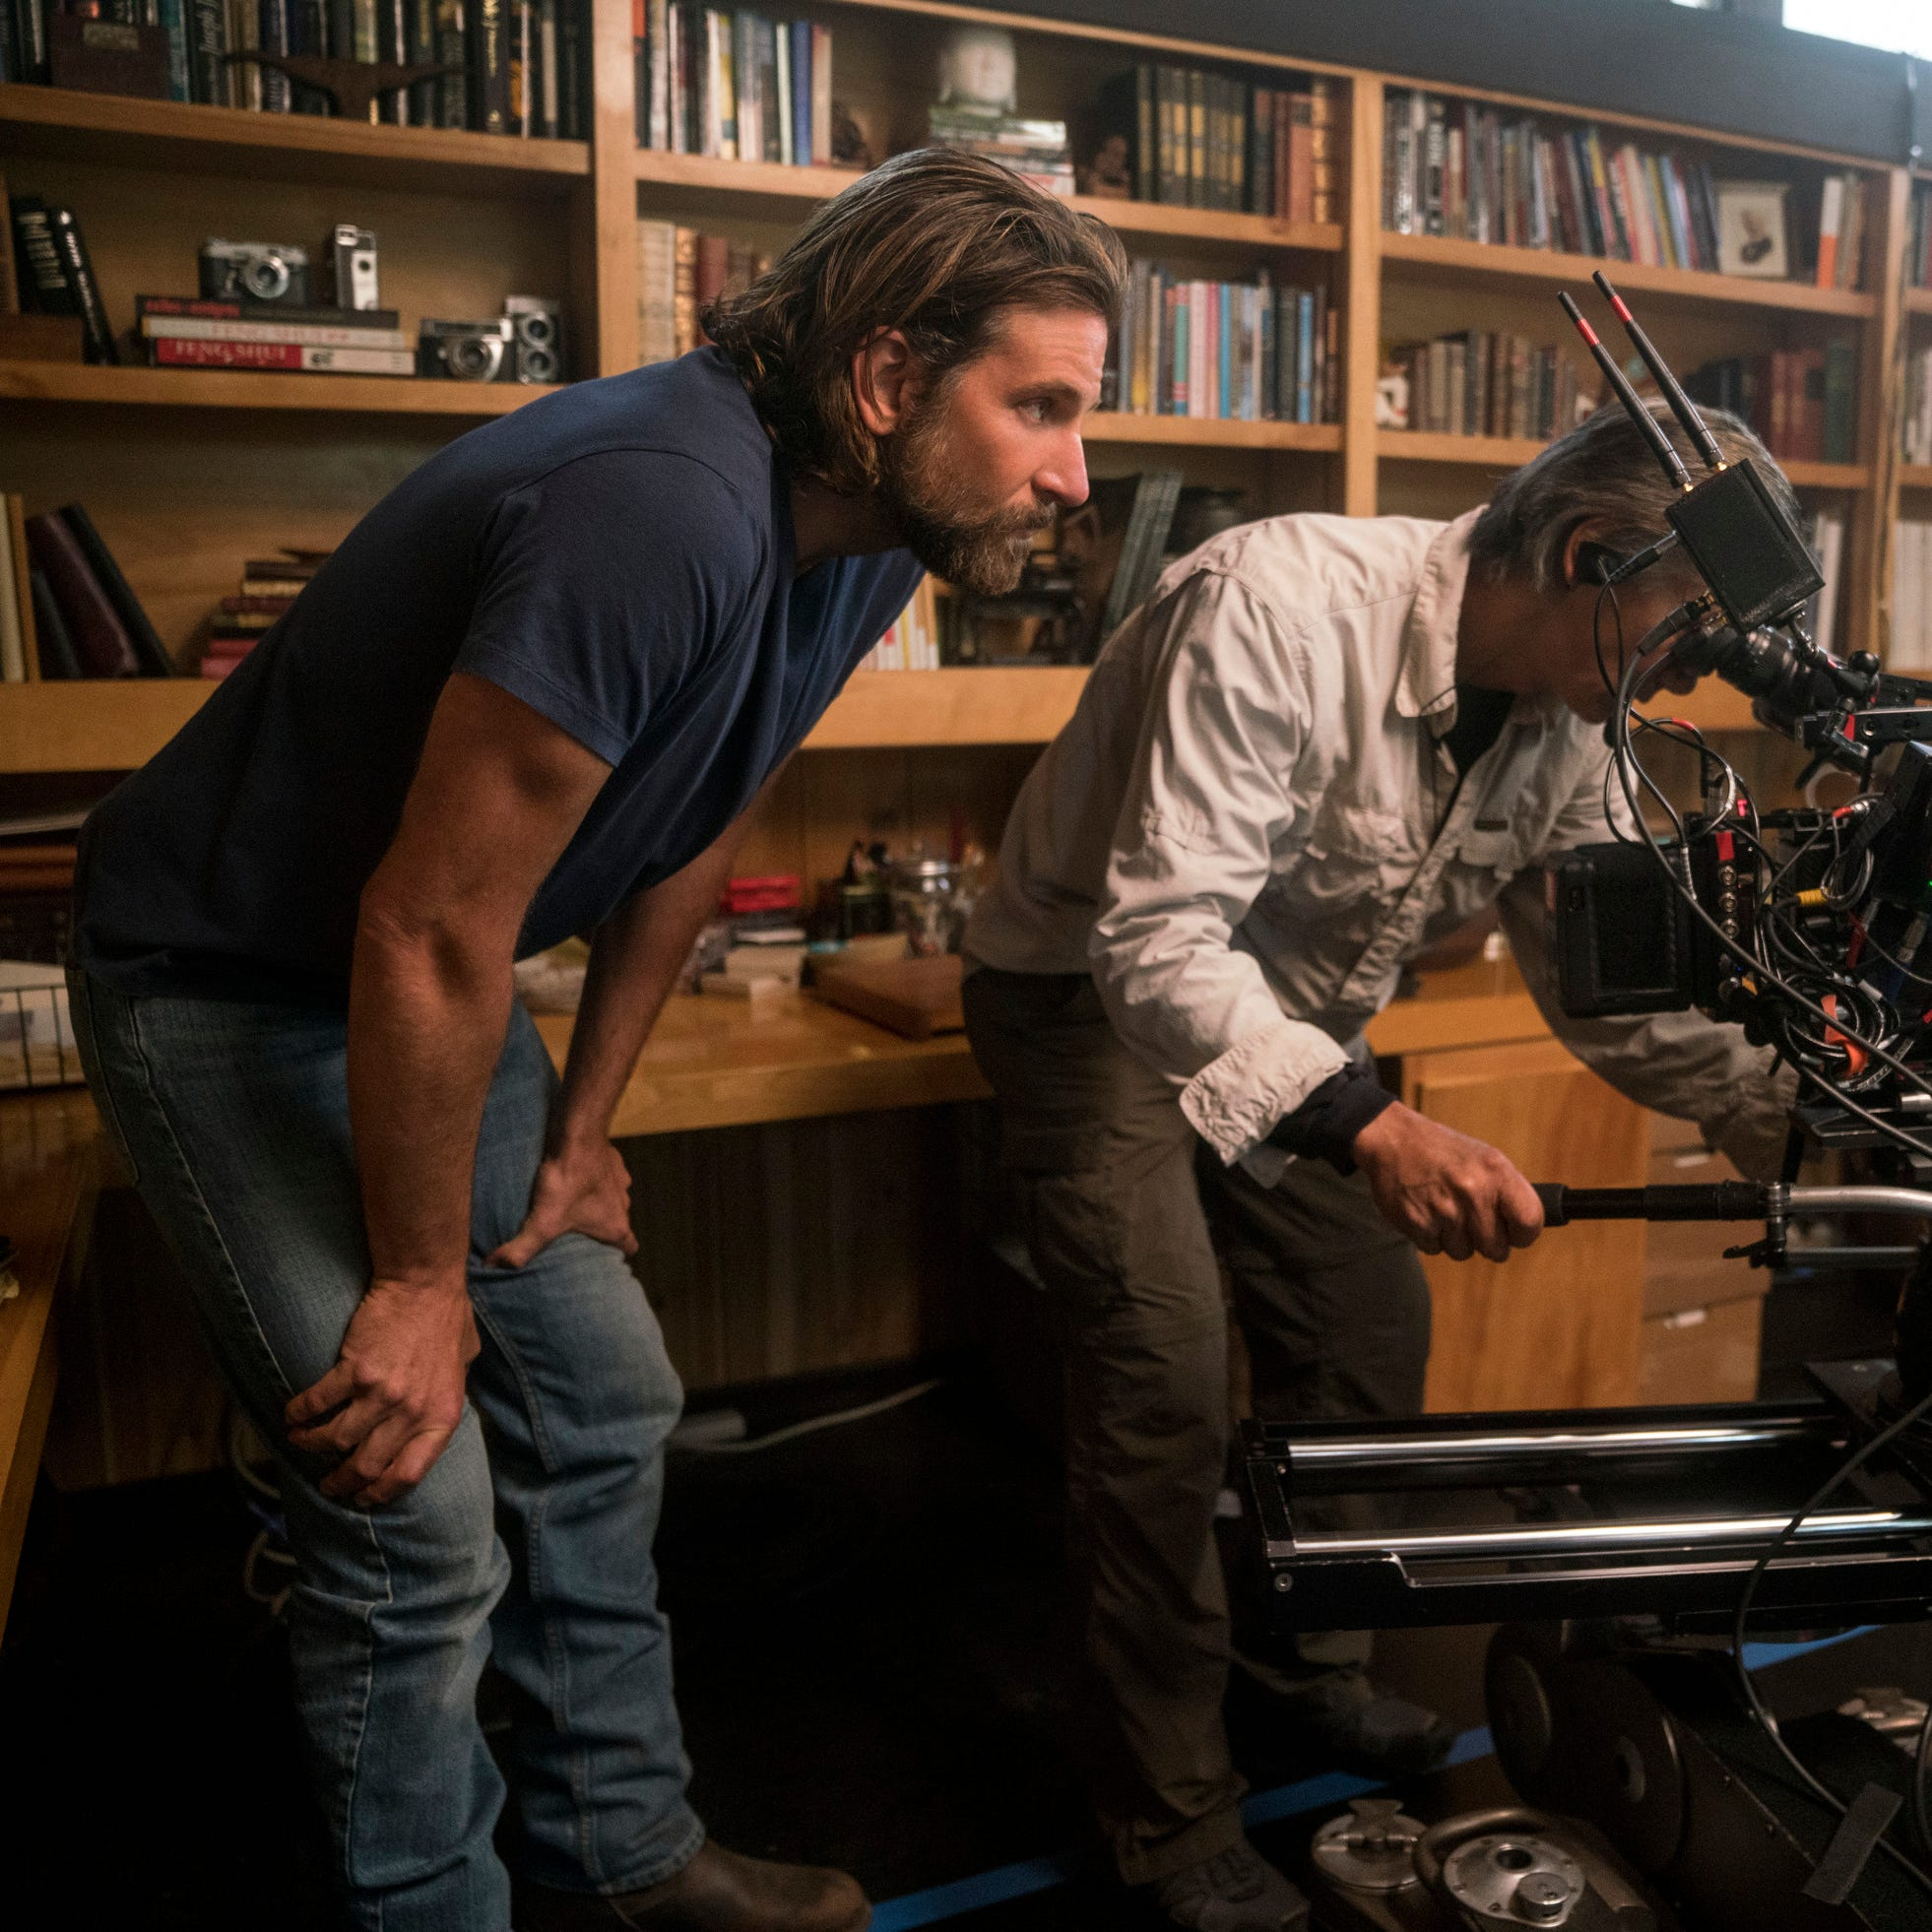 """This image released by Warner Bros. Pictures shows director/co-writer/producer Bradley Cooper, left, and camera operator Scott Sakamoto on the set of """"A Star is Born."""" Cooper, Alfonso Cuaron and Spike Lee are among the nominees for the Director's Guild award for outstanding directorial achievement. The DGA announced its five nominees Tuesday in one of the most closely watched guild awards leading up next month's Academy Awards.  (Clay Enos/Warner Bros. via AP) ORG XMIT: NYET206"""